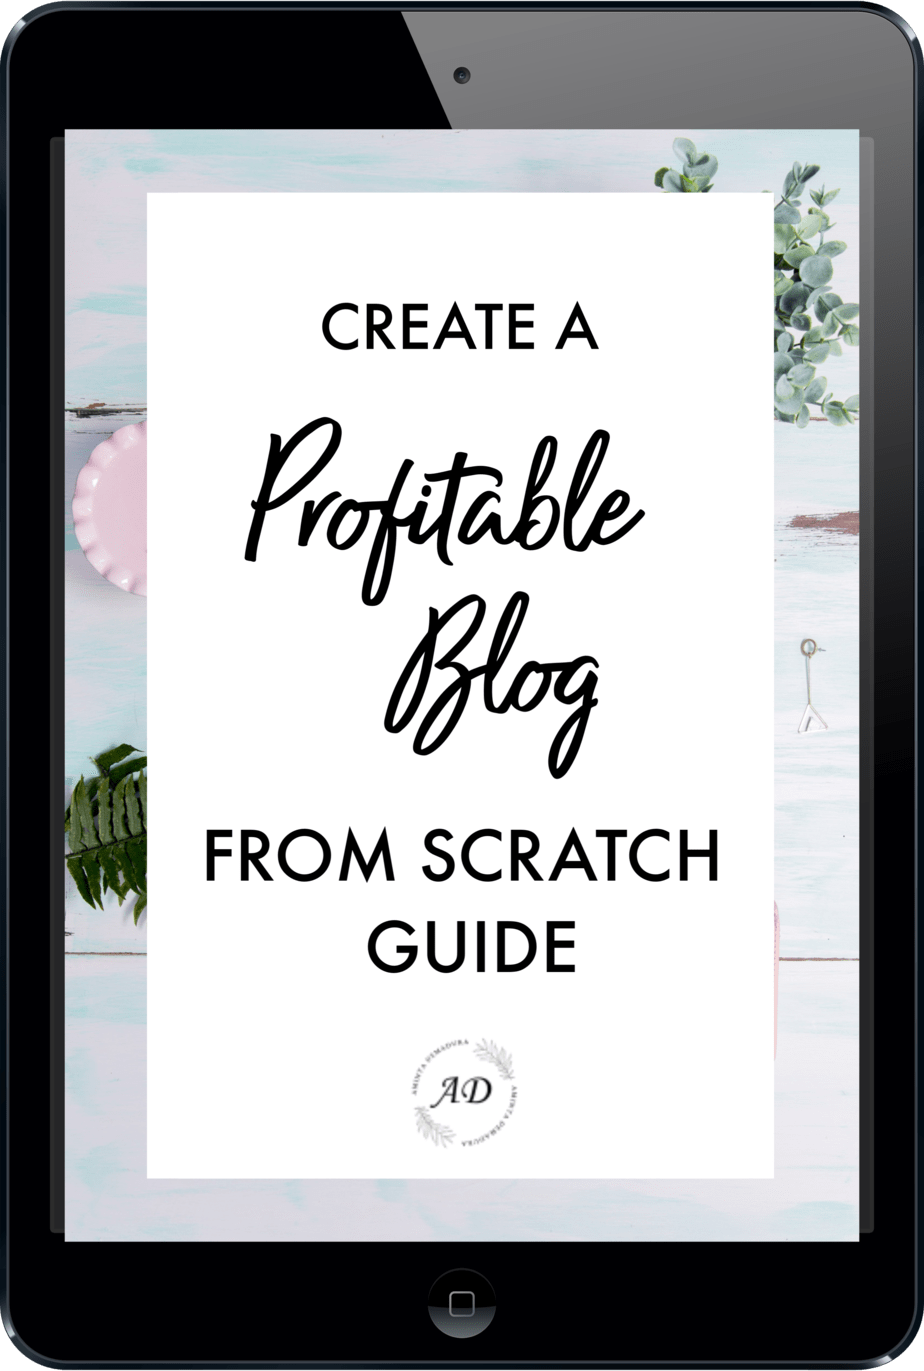 CREATE A PROFITABLE BLOG FROM SCRATCH